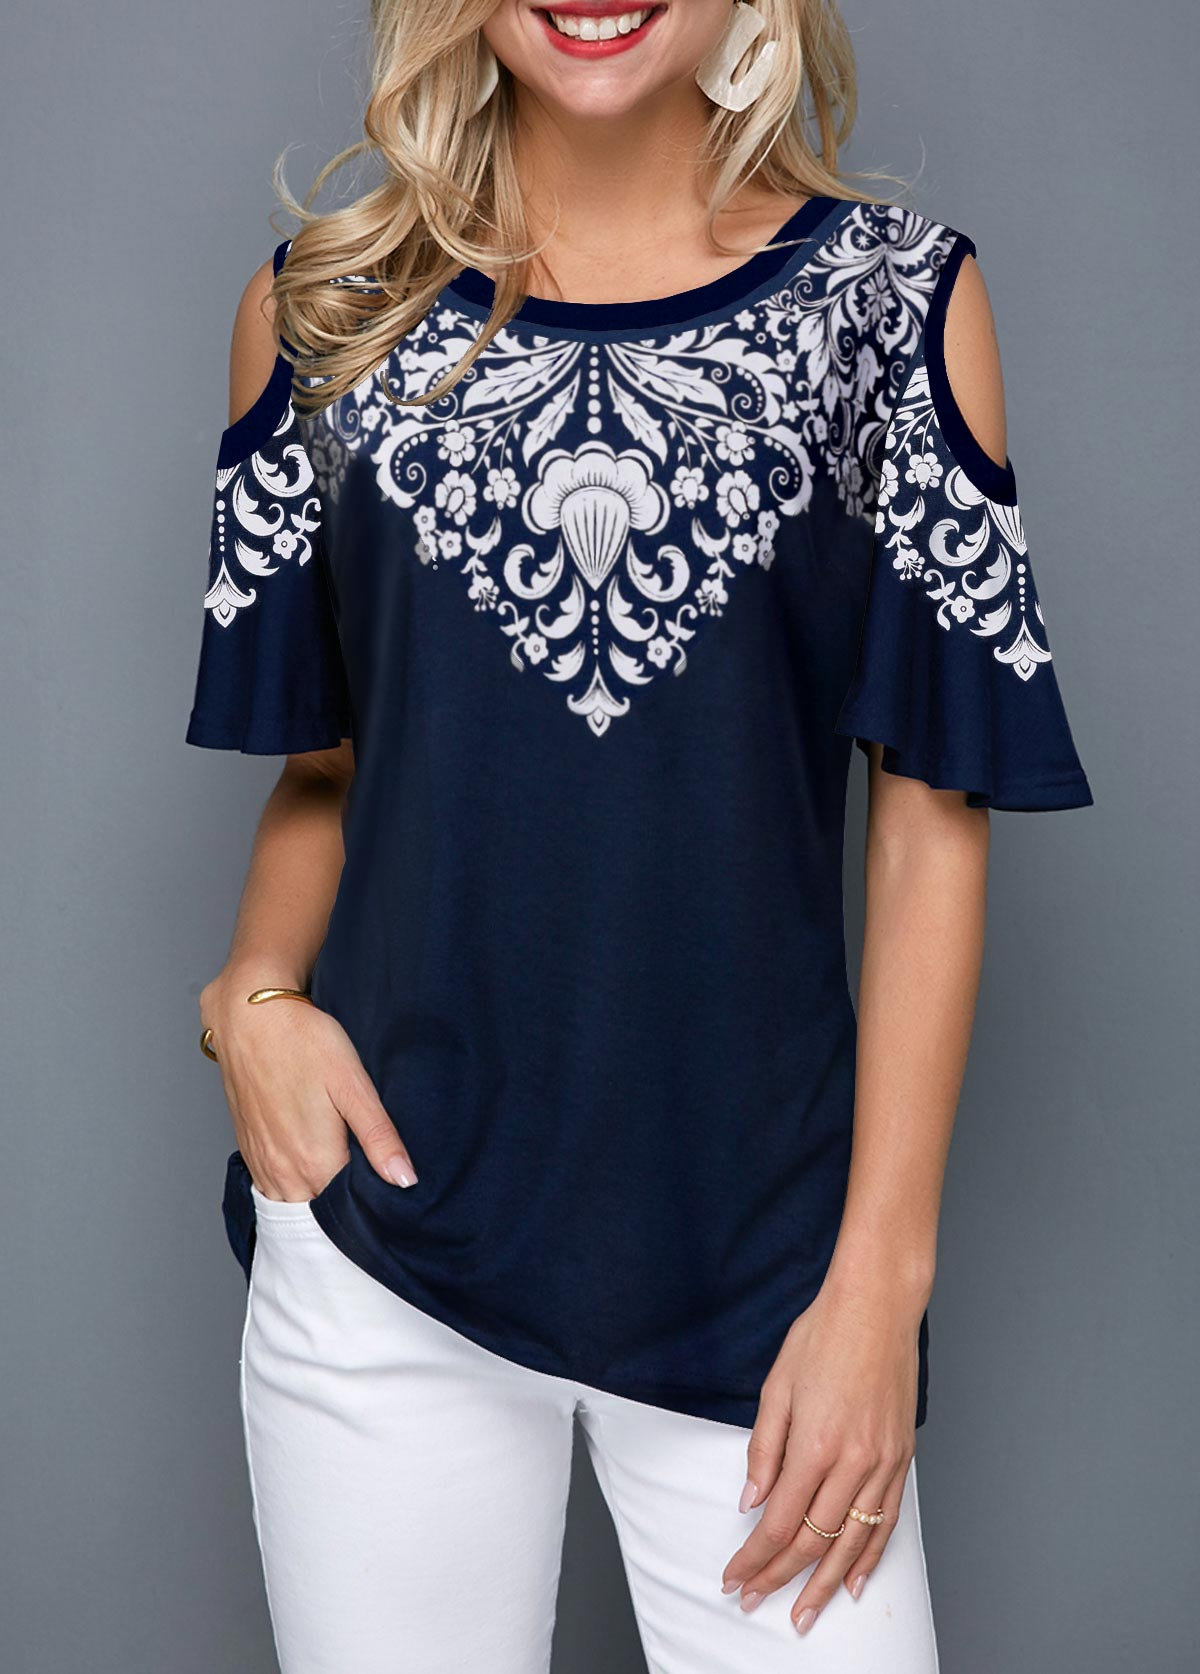 a8703892929c6 Cold Shoulder Tribal Print Navy Blue T Shirt. AddThis Sharing Buttons